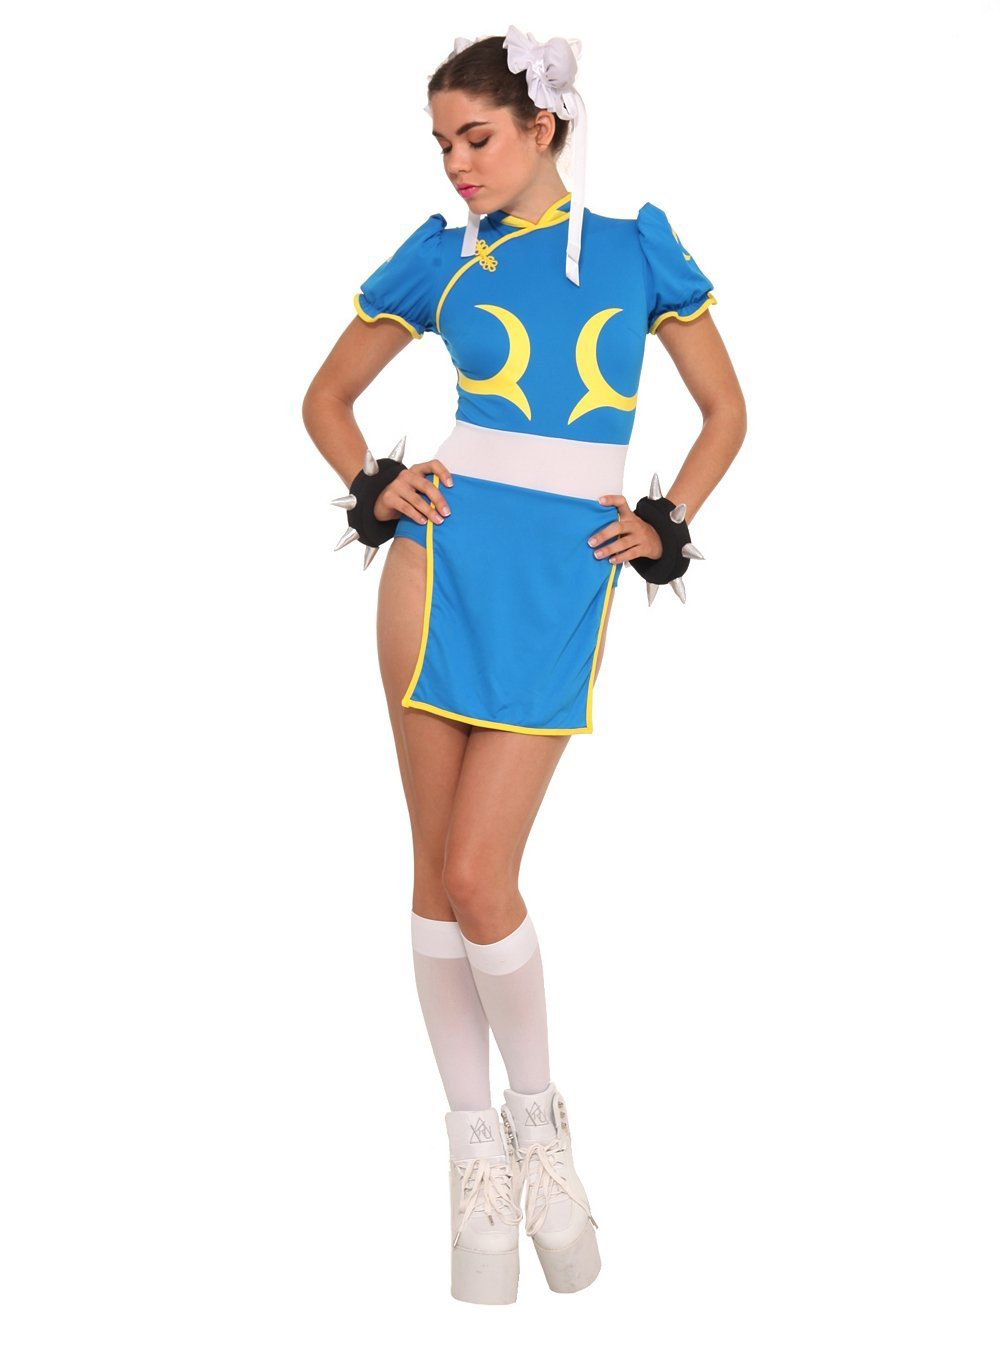 Street Fighter Halloween Costumes no caption provided gallery image 1 gallery image 2 Halloween Costumes For Street Fighter And Mortal Kombat Image 1